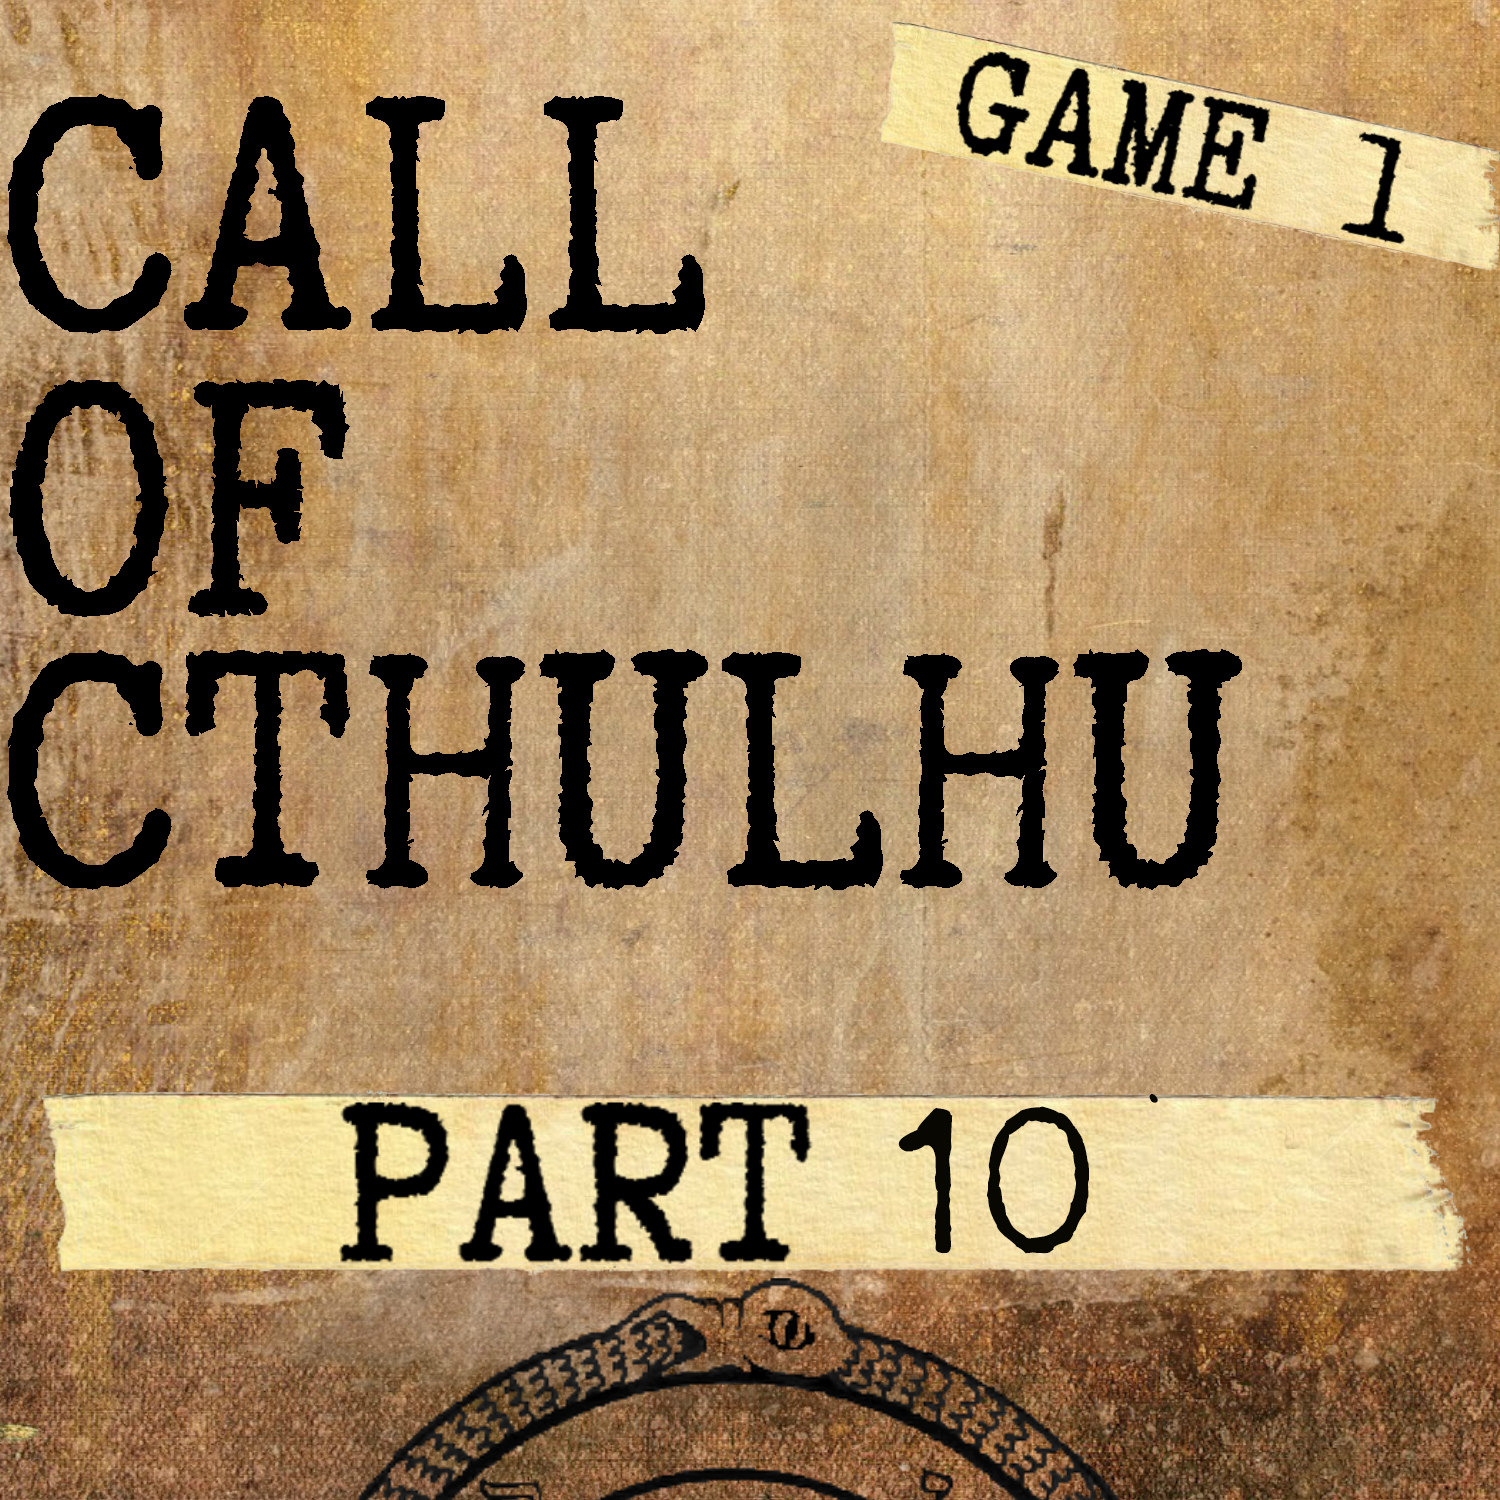 Artwork for Call of Cthulhu - Game 1: Part 10